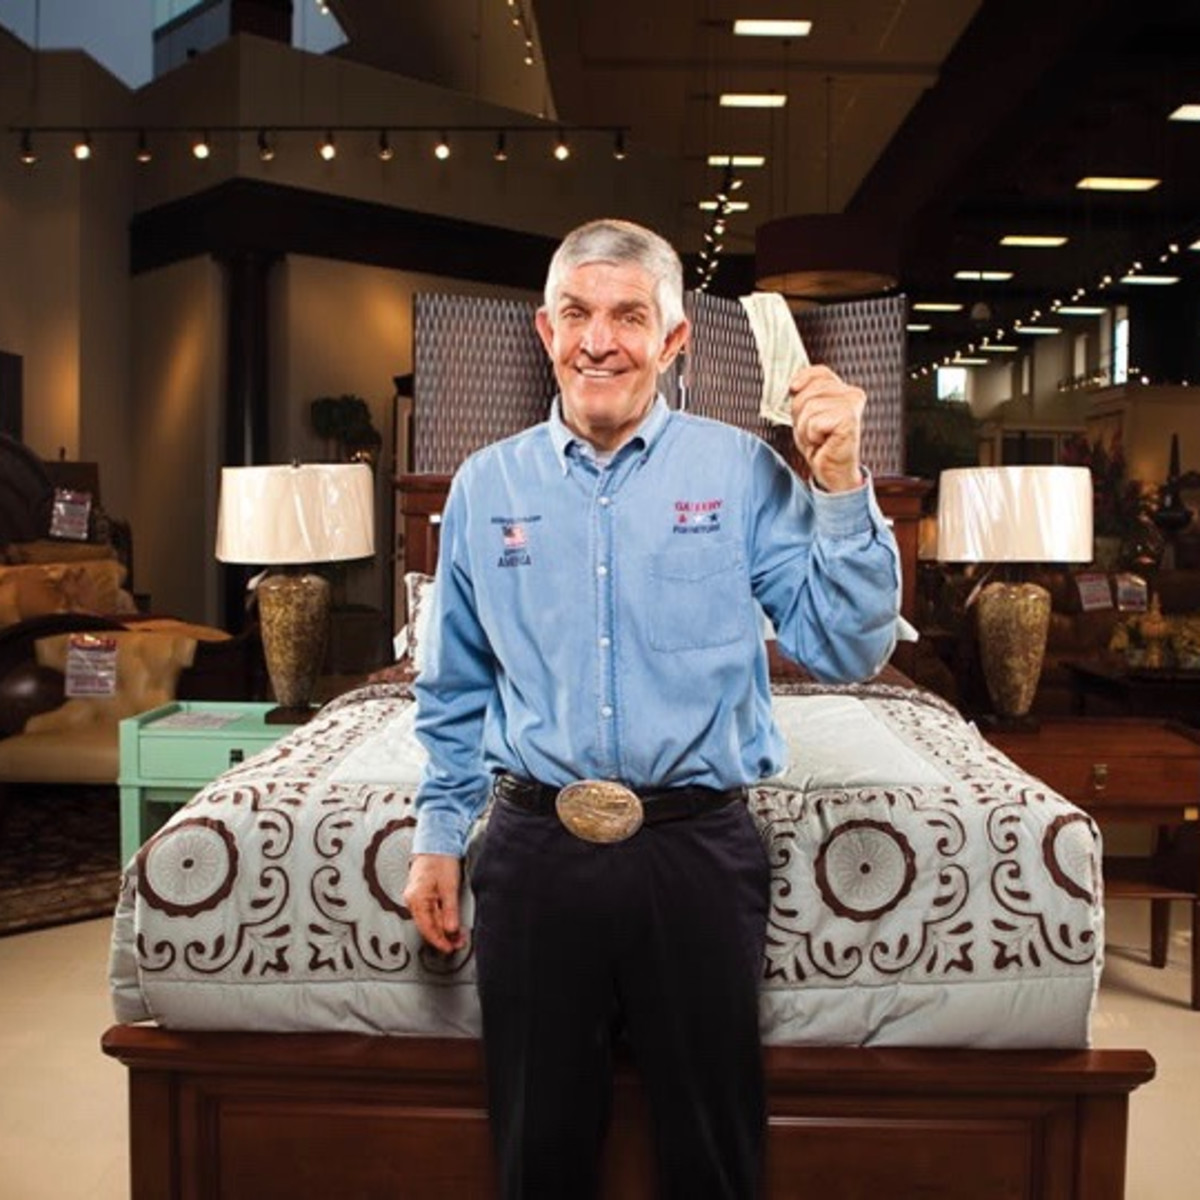 Mattress Mac or Jim McIngvale of Gallery Furniture holding up dollar bills